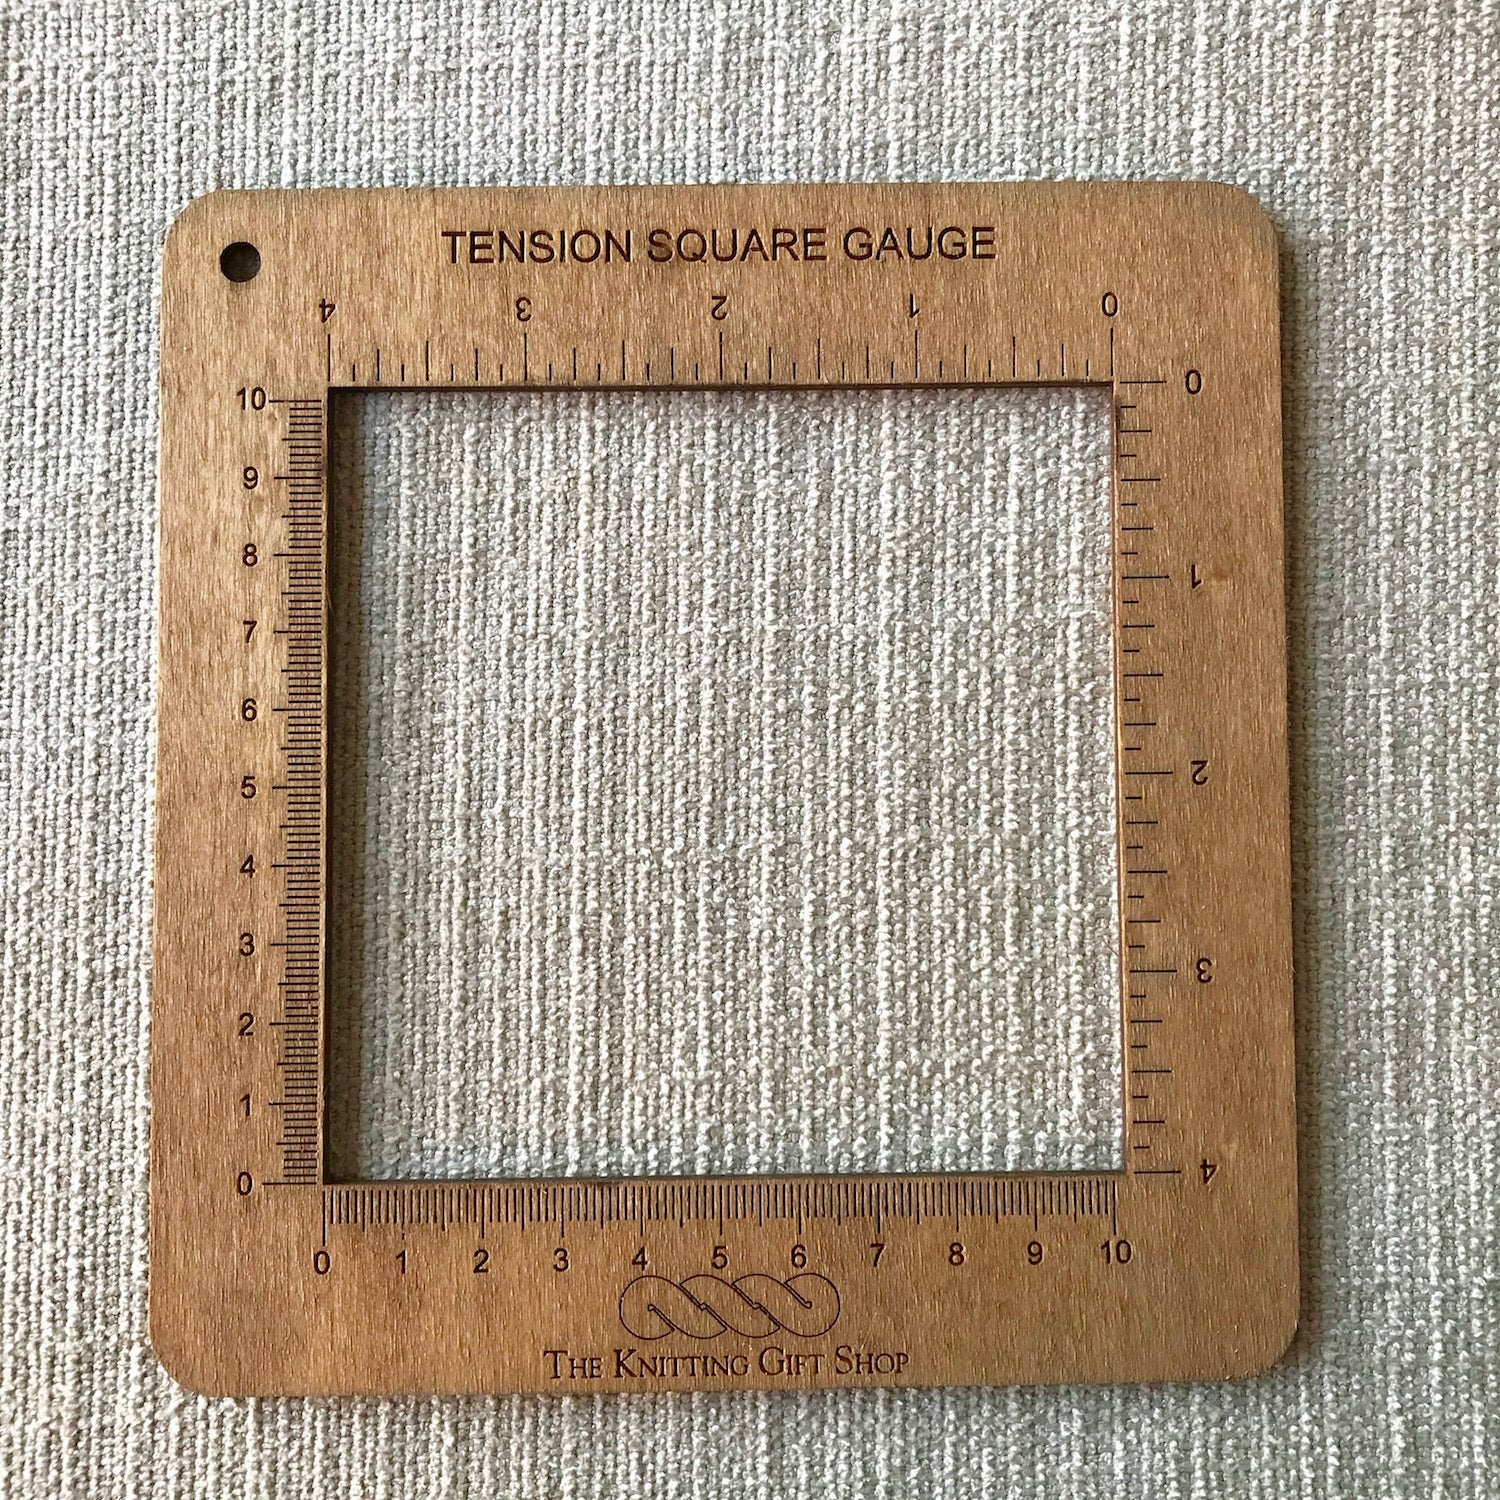 Wooden Tension Square Gauge